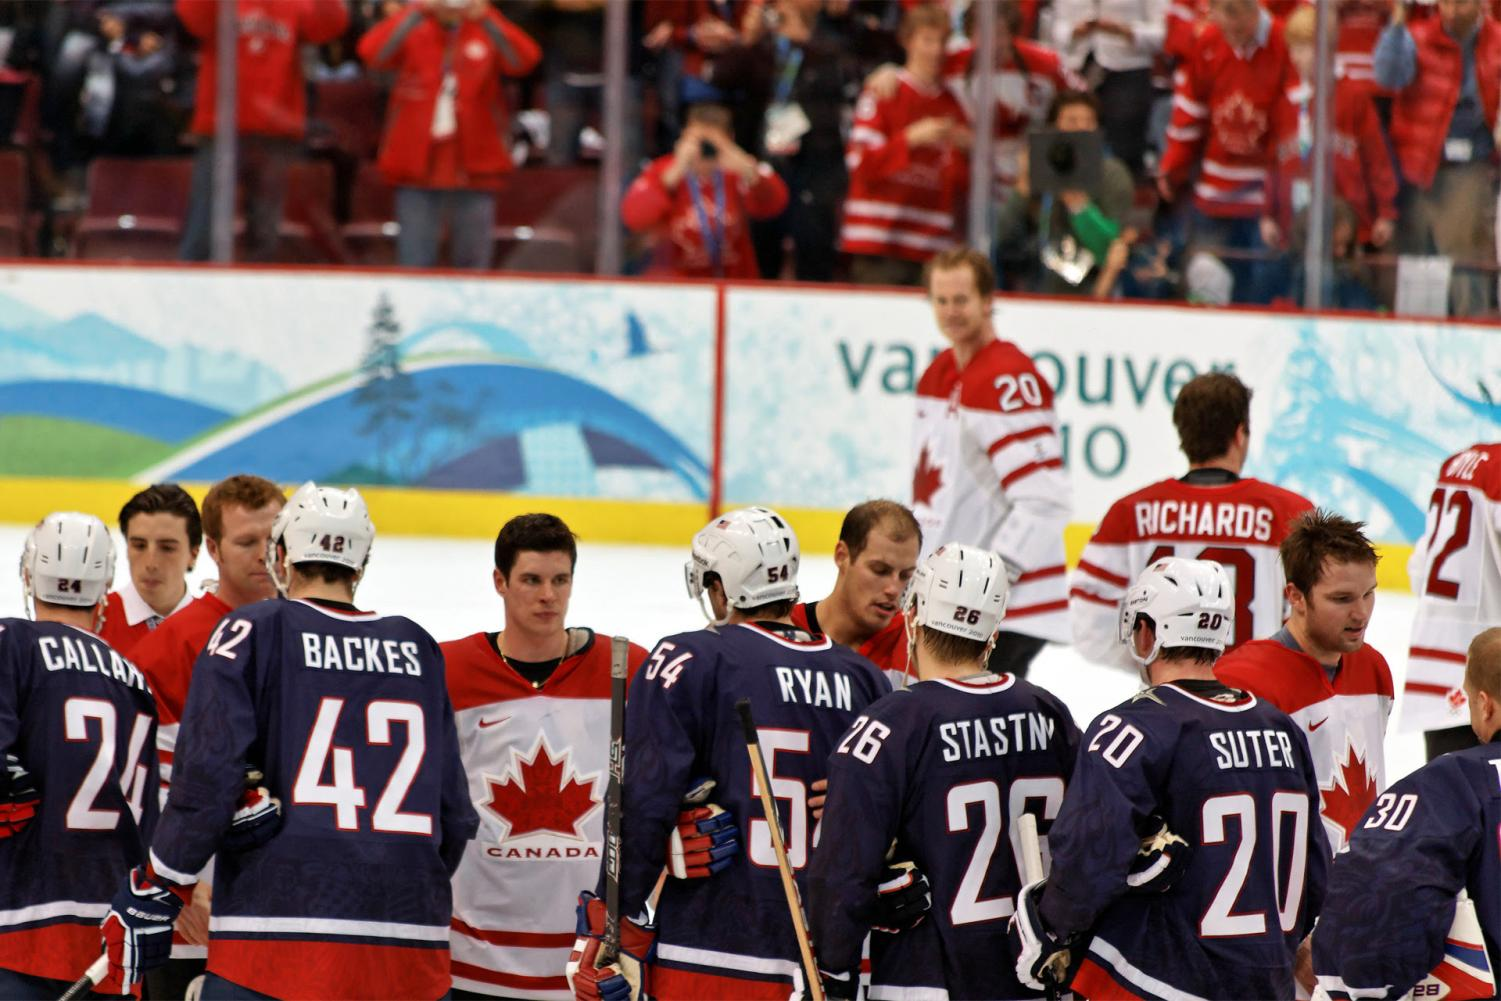 USA women's hockey team falls to Canada, 2-1